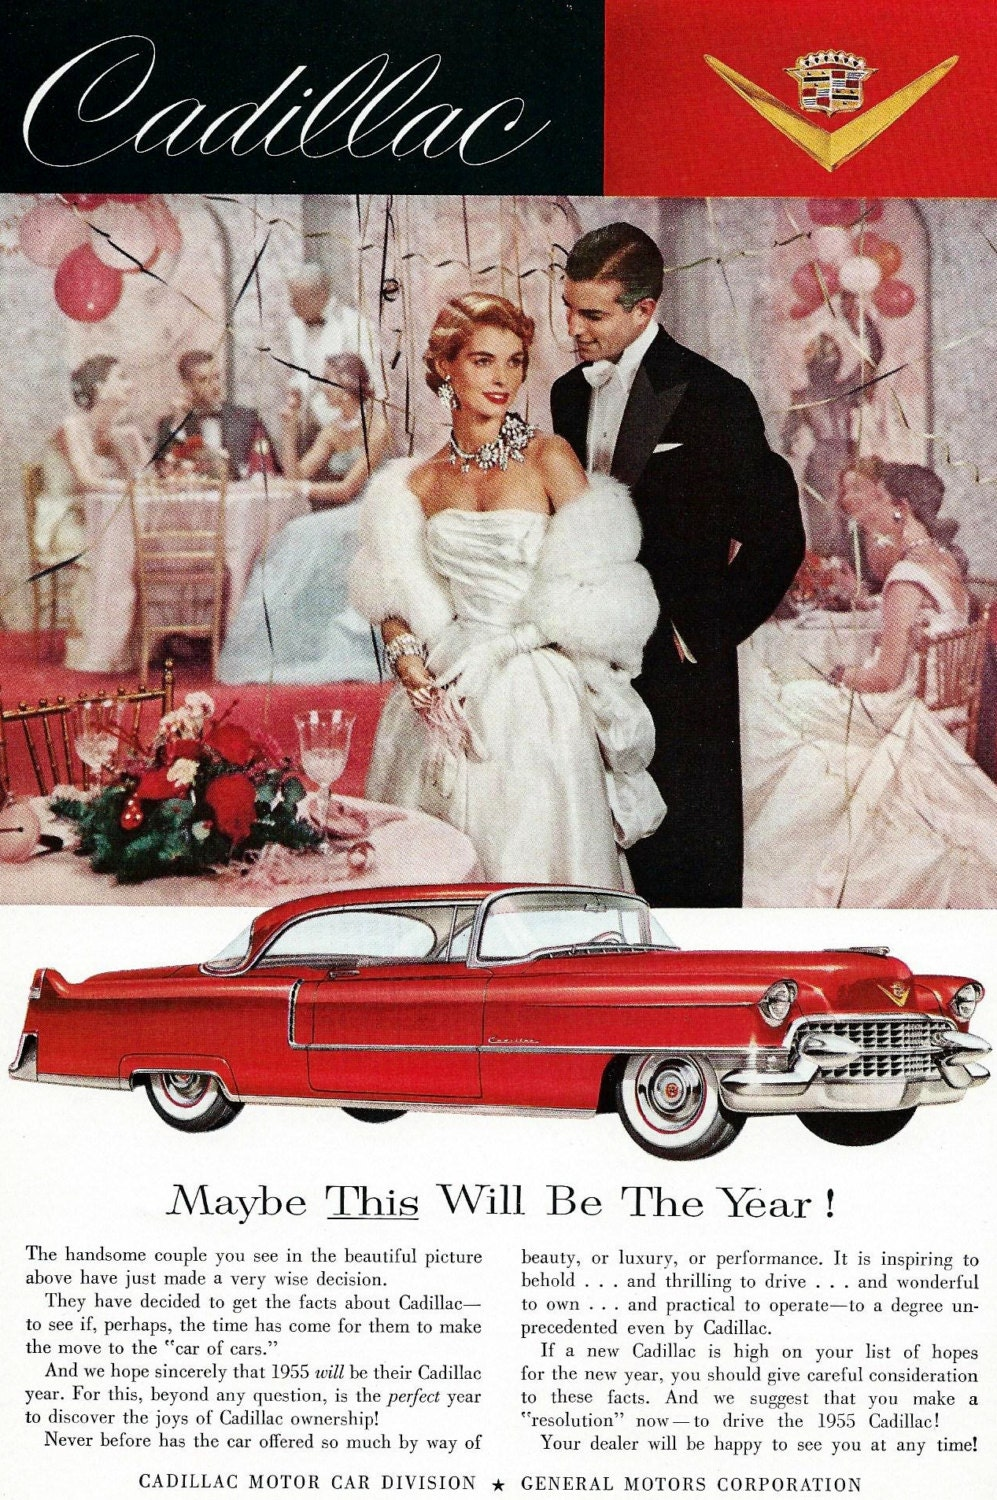 Vintage Car Ad 1955 Cadillac 1950s moreover Wallpapers Mercedes Benz 170 V Limousine W136 1946 53 261770 moreover Cars208d further The Underwear Helped Shape Women S Figures Ages as well Av328. on 1940s car ads